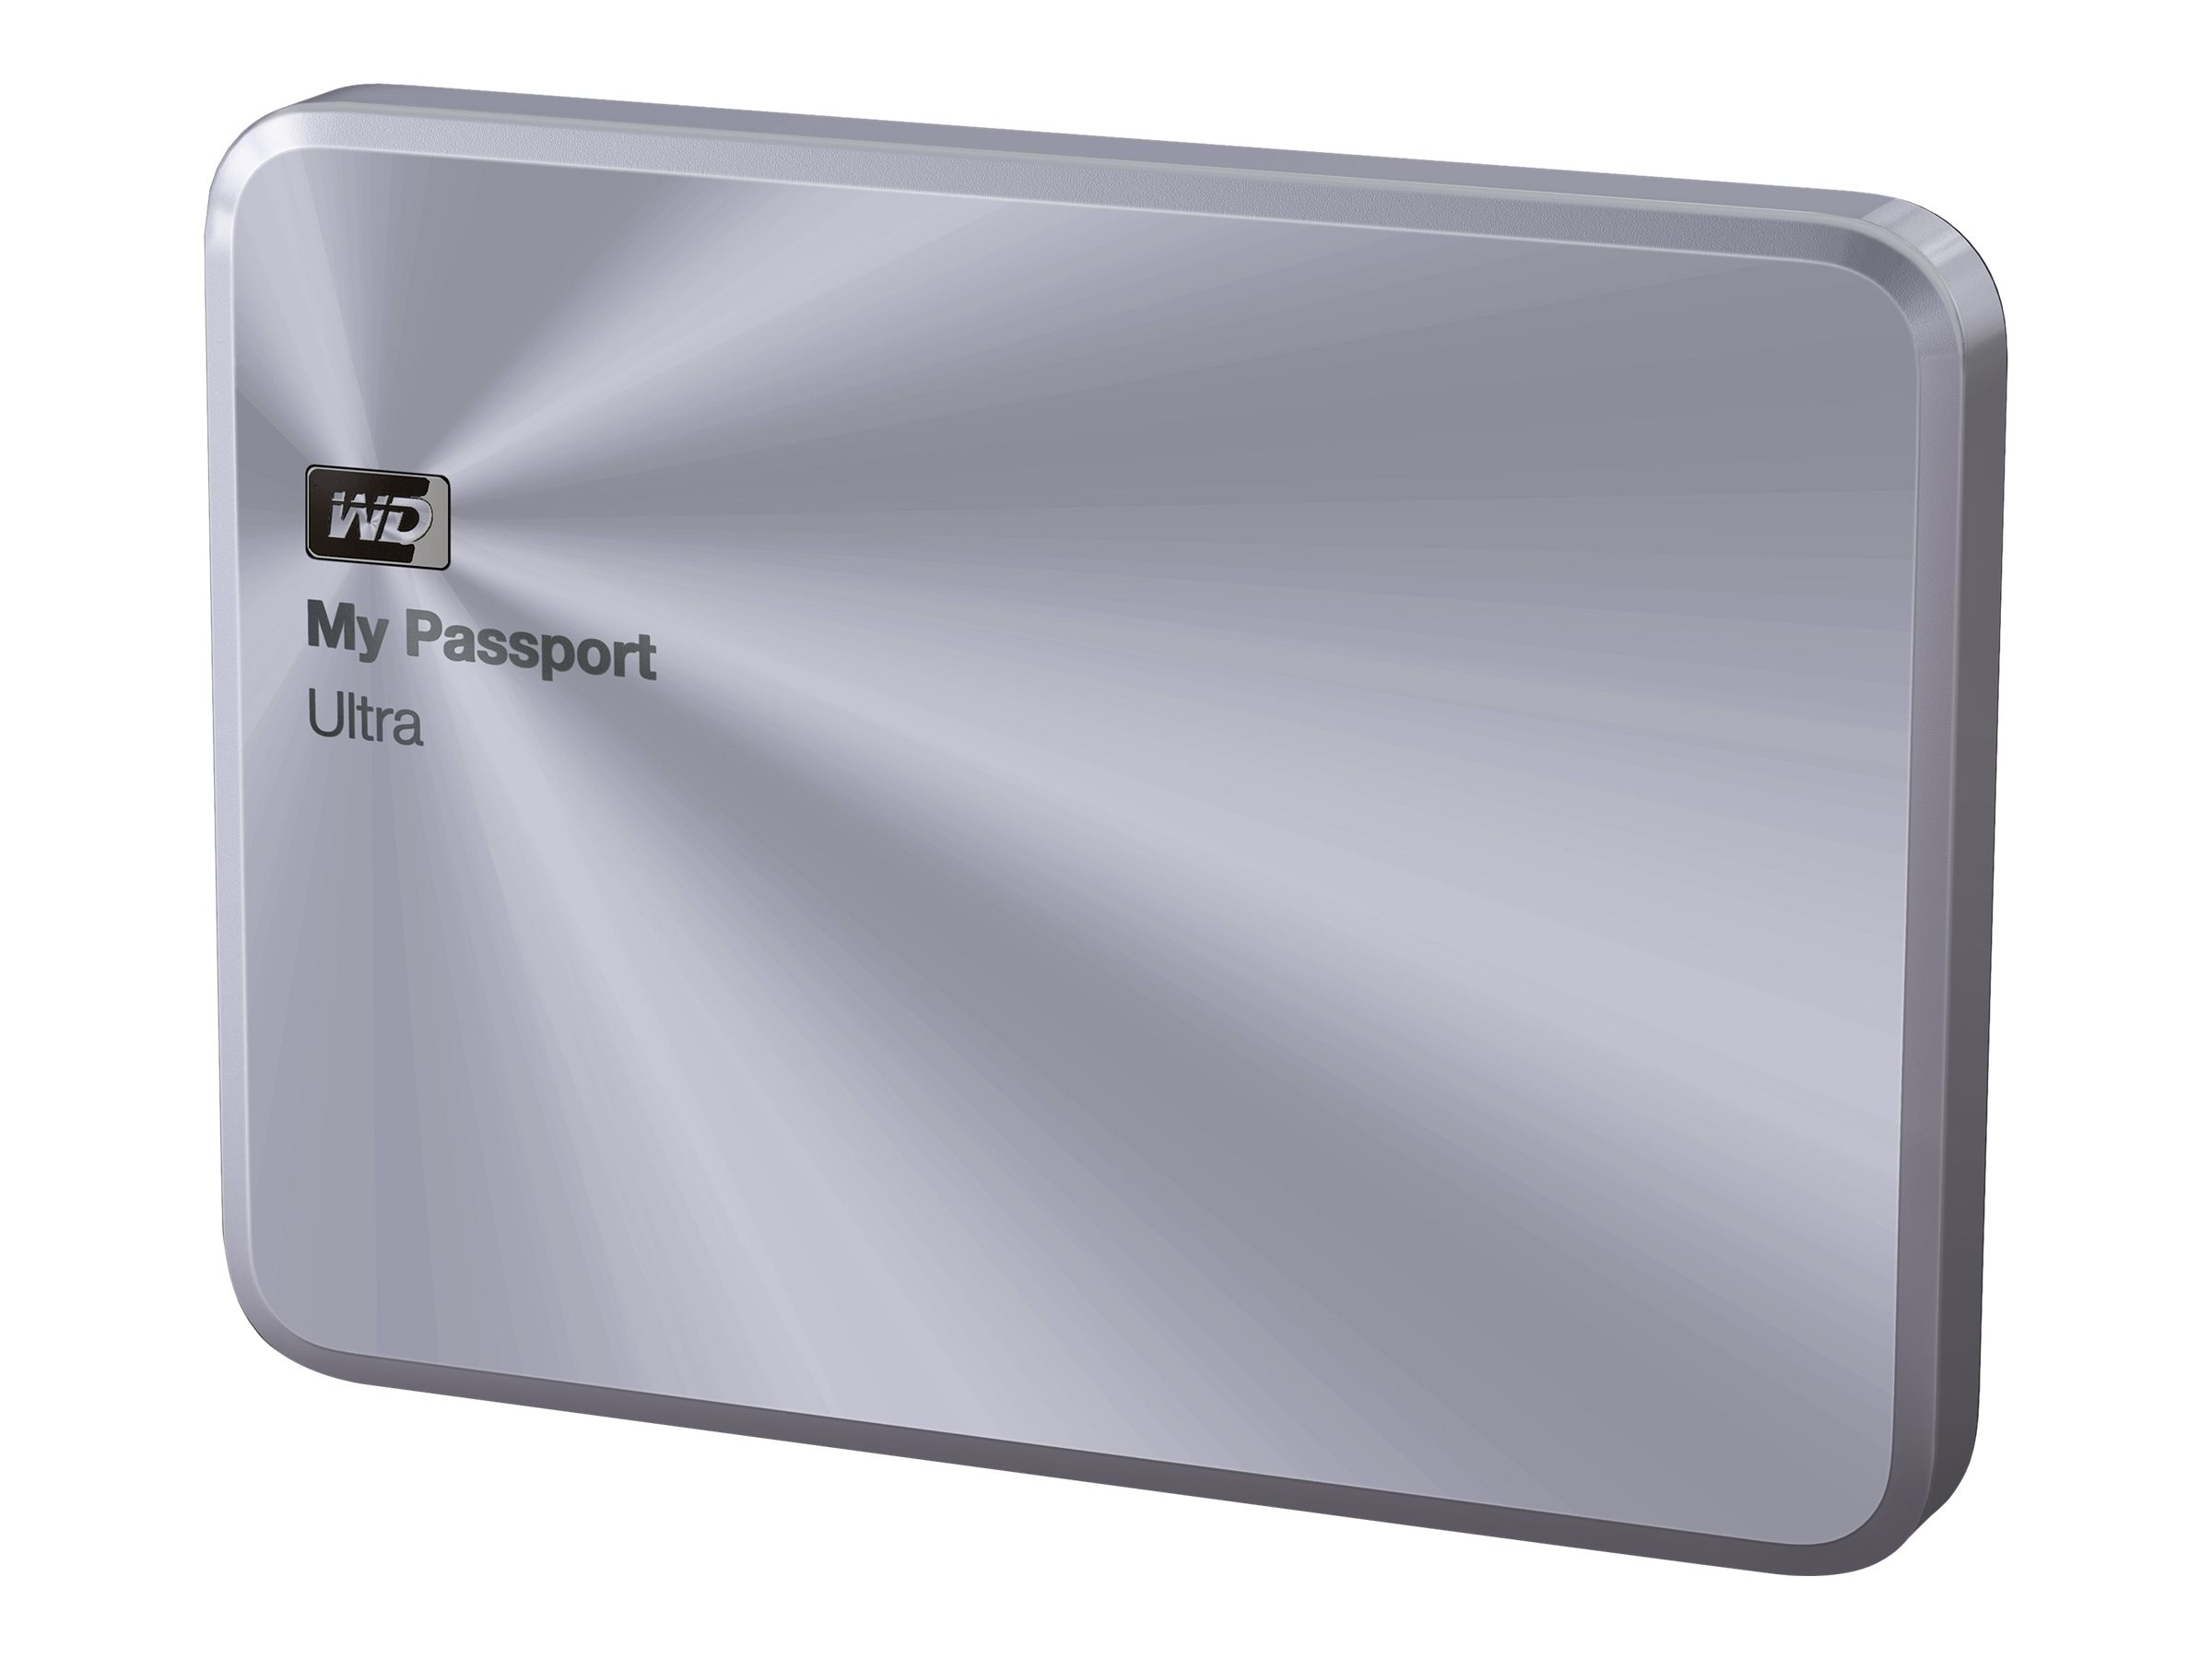 WD 1TB My Passport Ultra Metal Edition USB 3.0 Portable Hard Drive - Silver